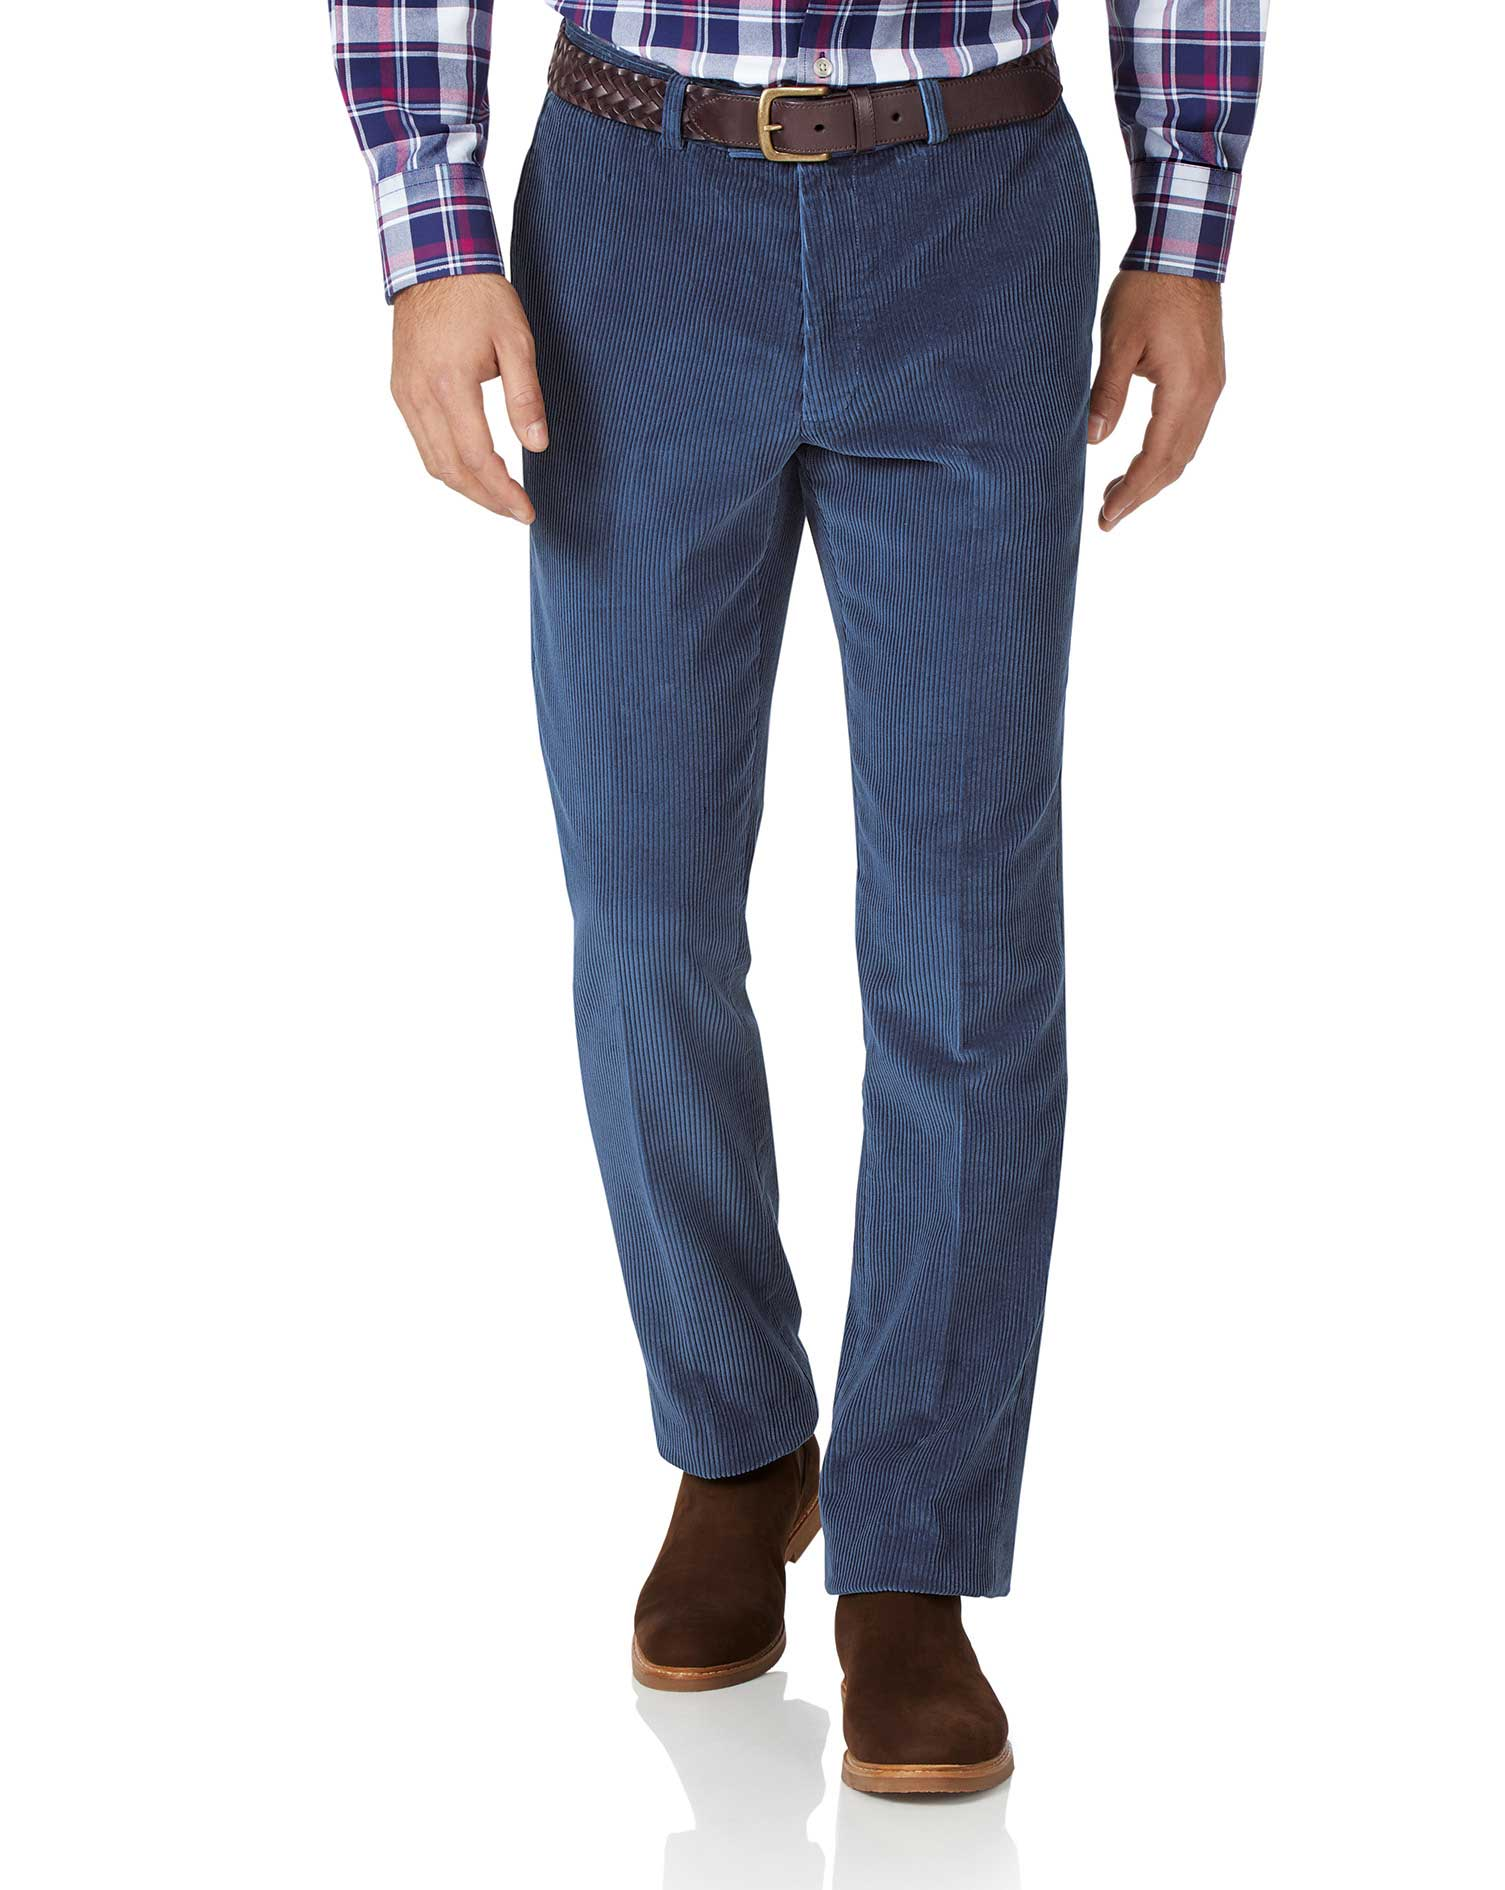 Airforce Blue Slim Fit Jumbo Corduroy Trousers Size W36 L30 by Charles Tyrwhitt